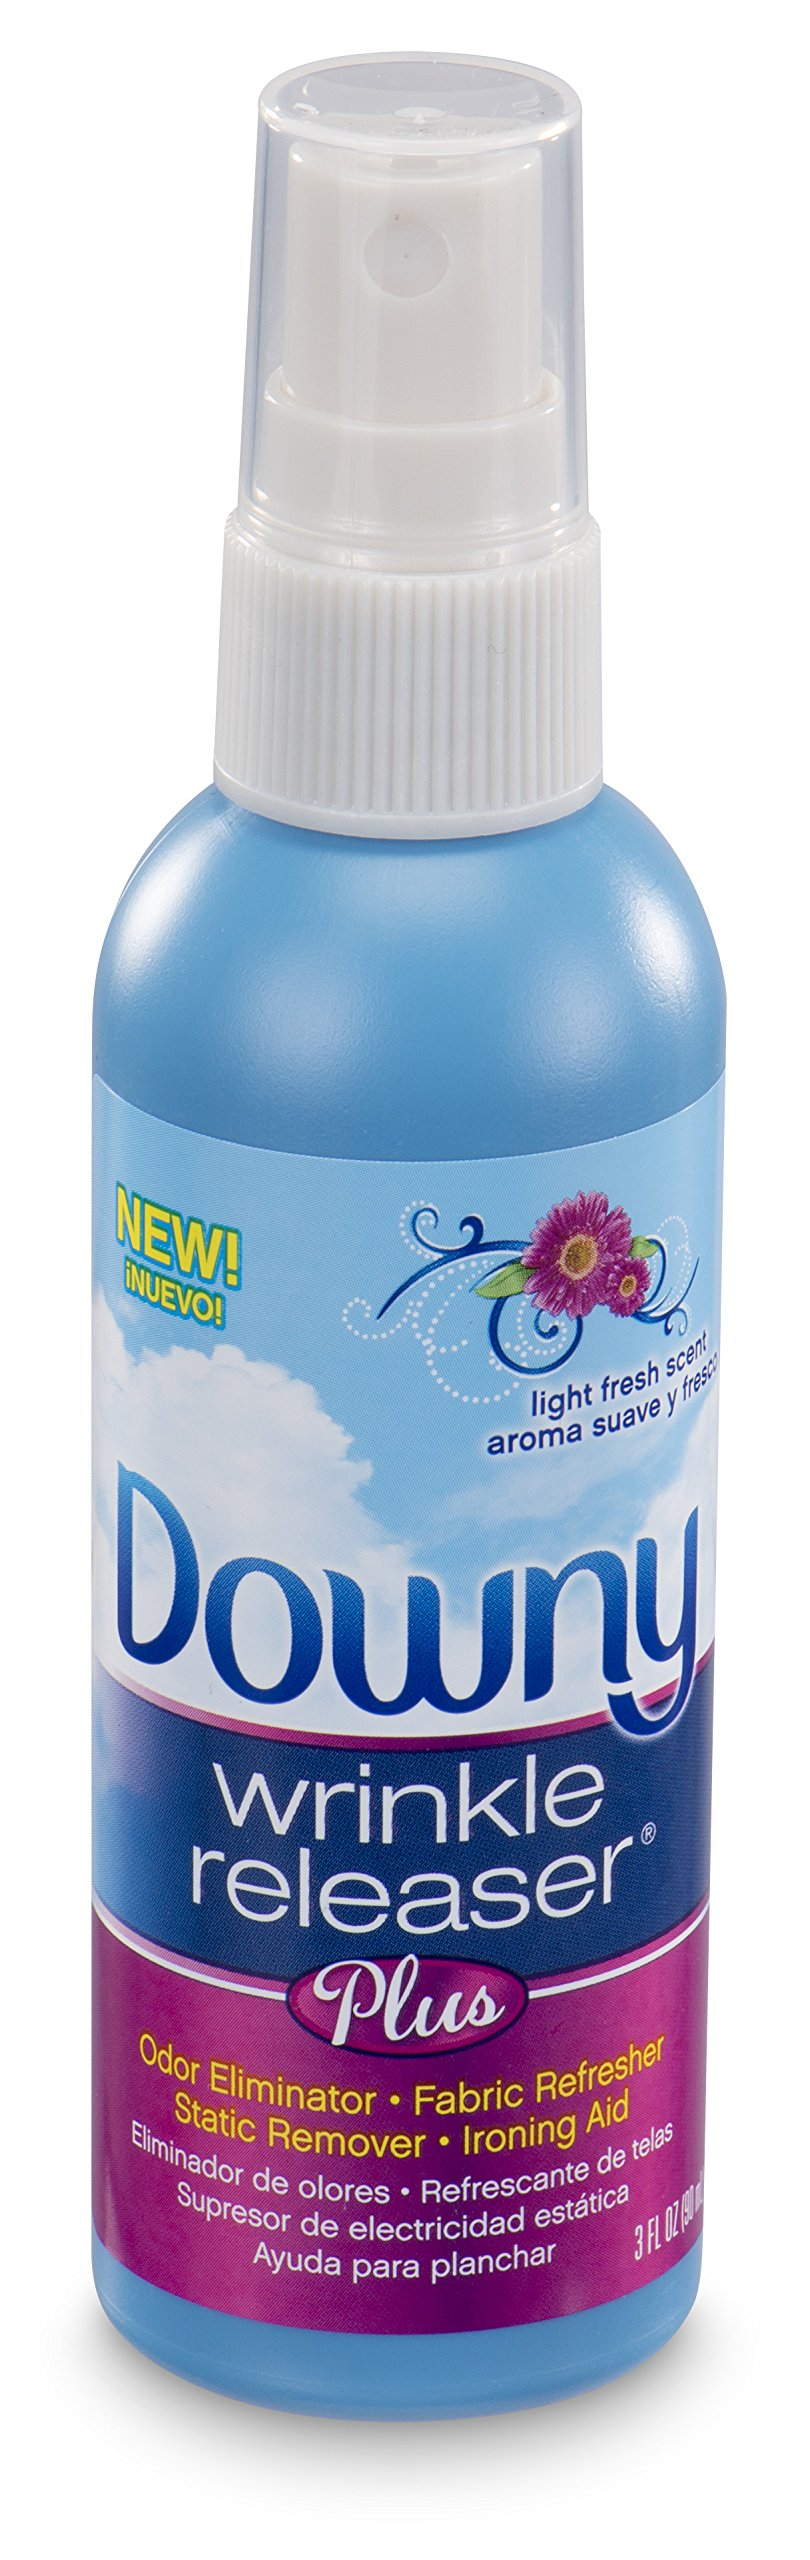 Downy Wrinkle Releaser Plus Light Fresh Scent, Travel Size, 3 Fl Oz (Pack of 12) by Downy (Image #1)